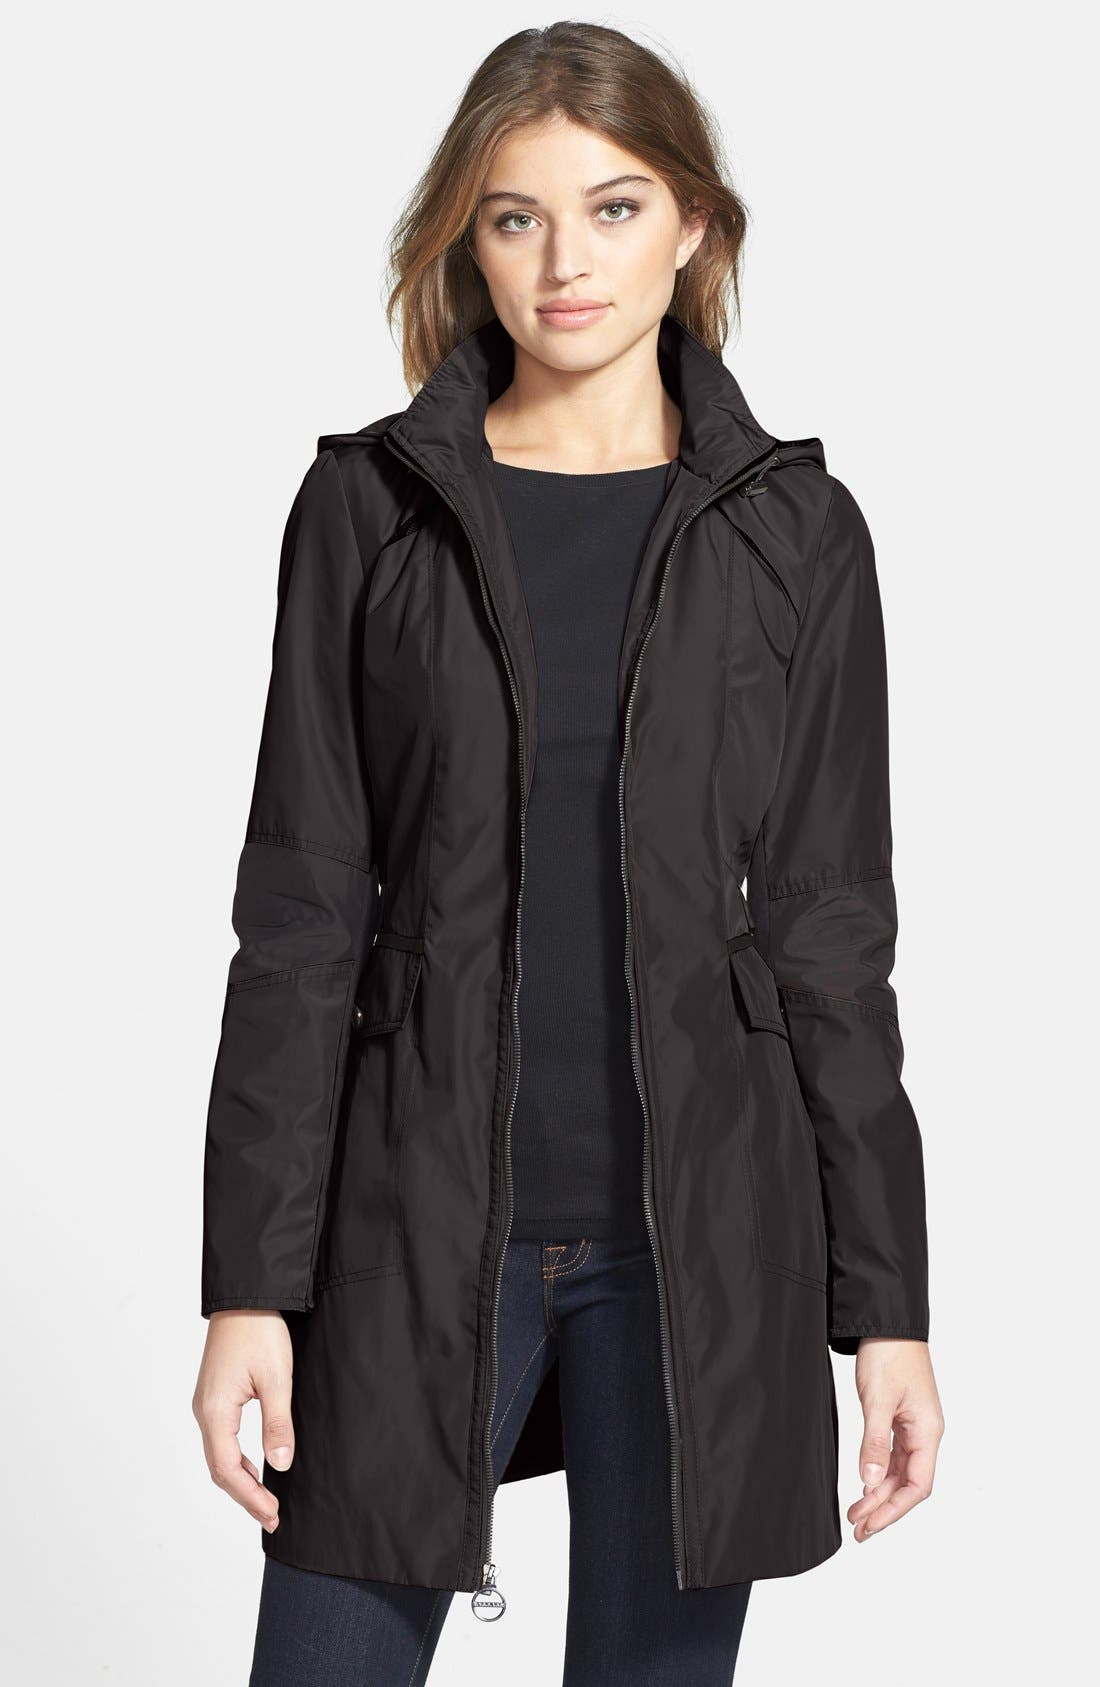 Main Image - Laundry by Shelli Segal Packable Colorblock Anorak